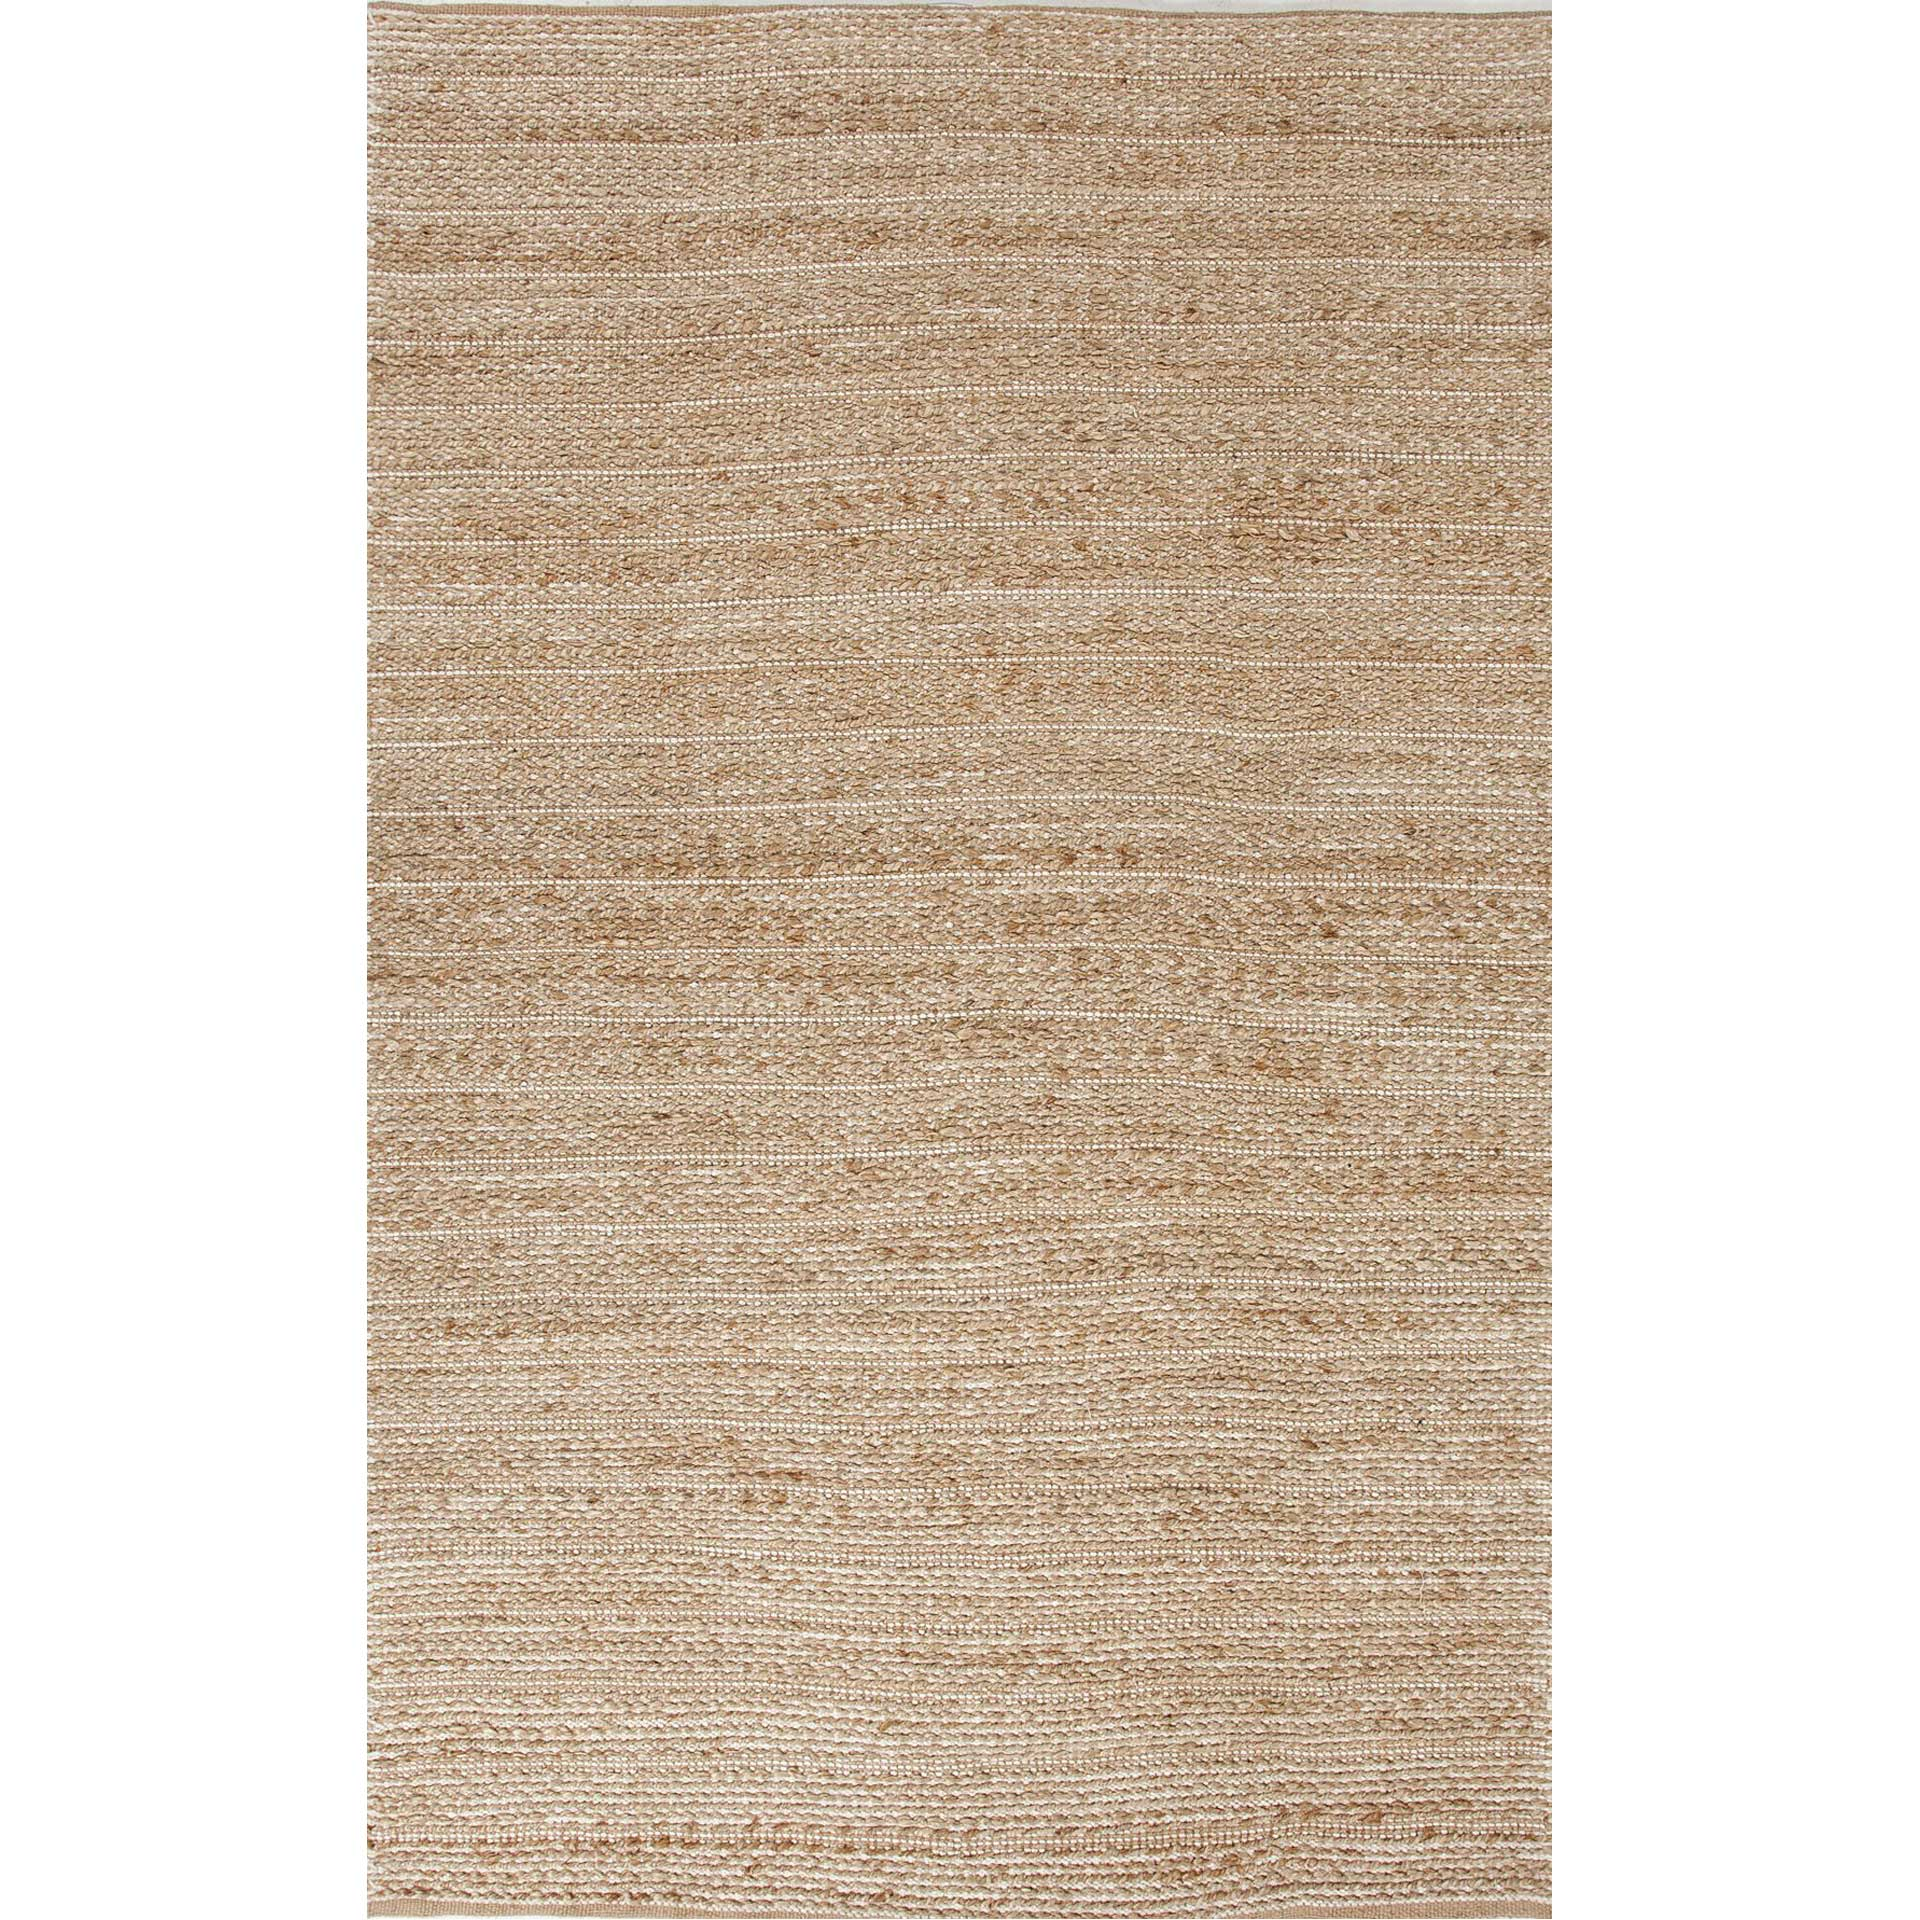 Himalaya Clifton Cream Area Rug